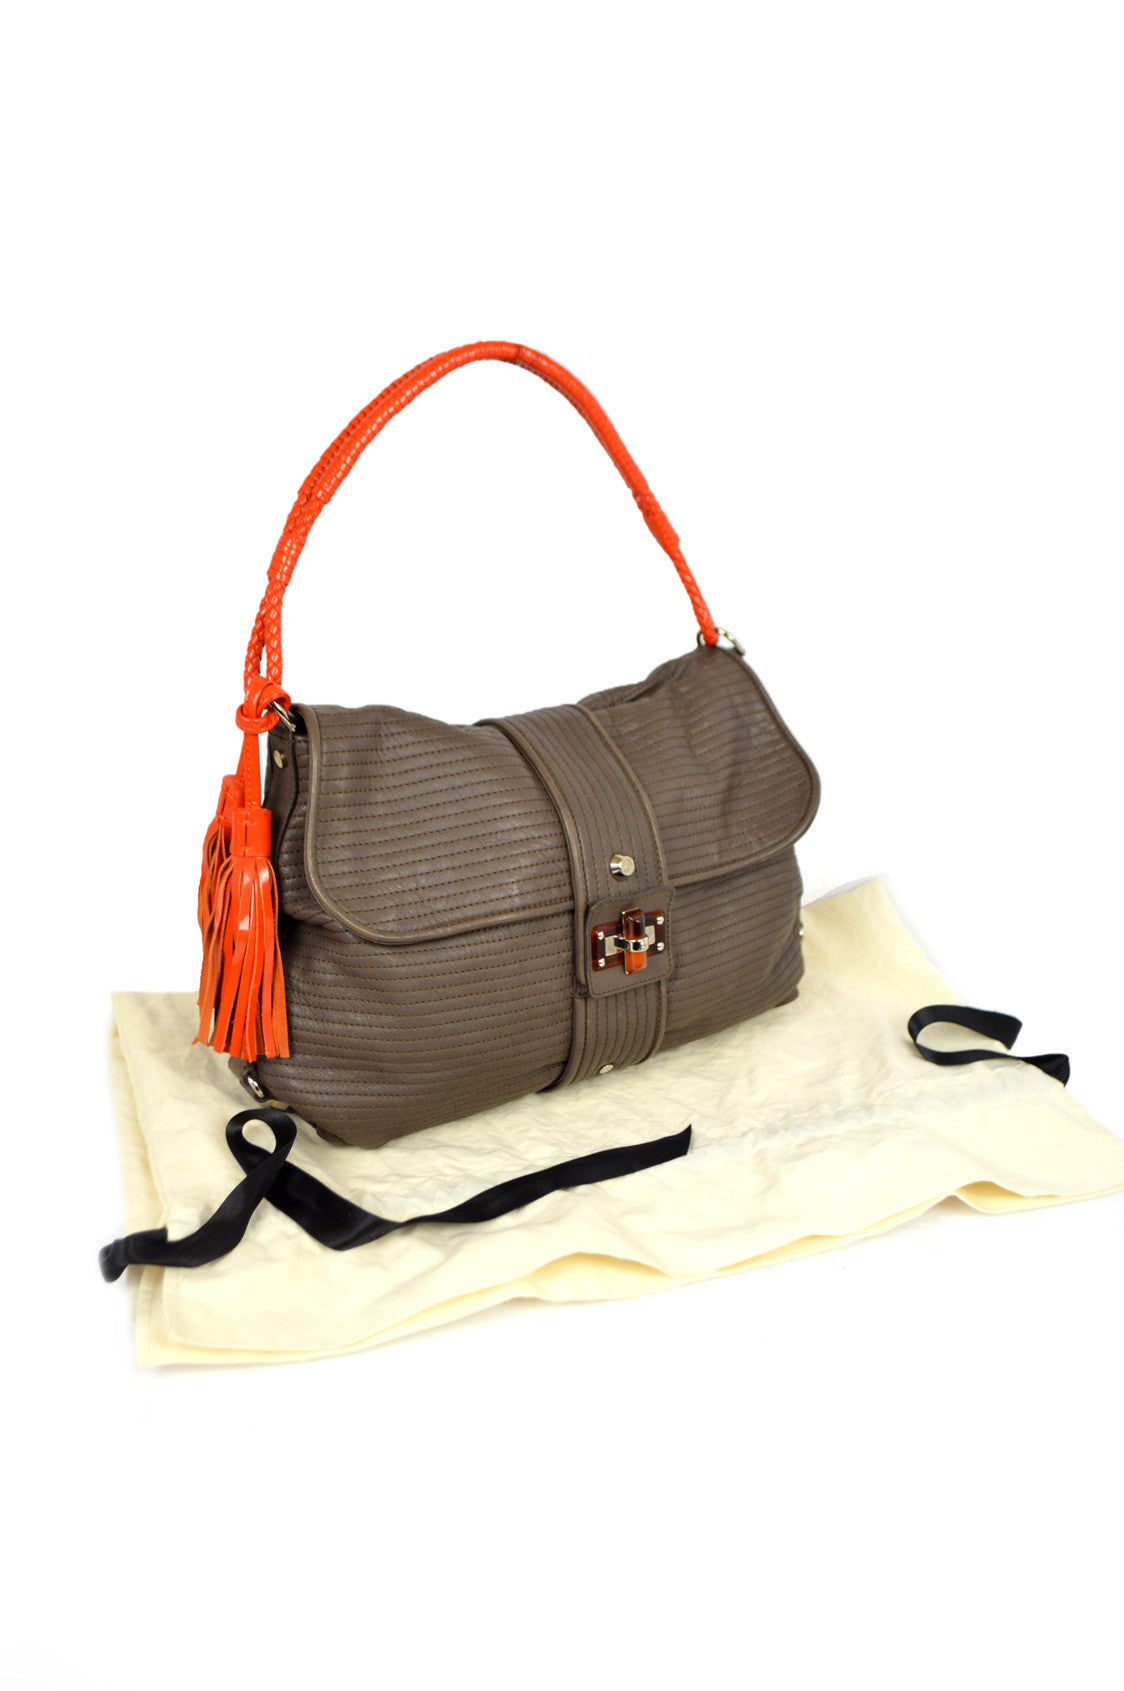 Taupe Leather With Orange Pise Shoulder Bag